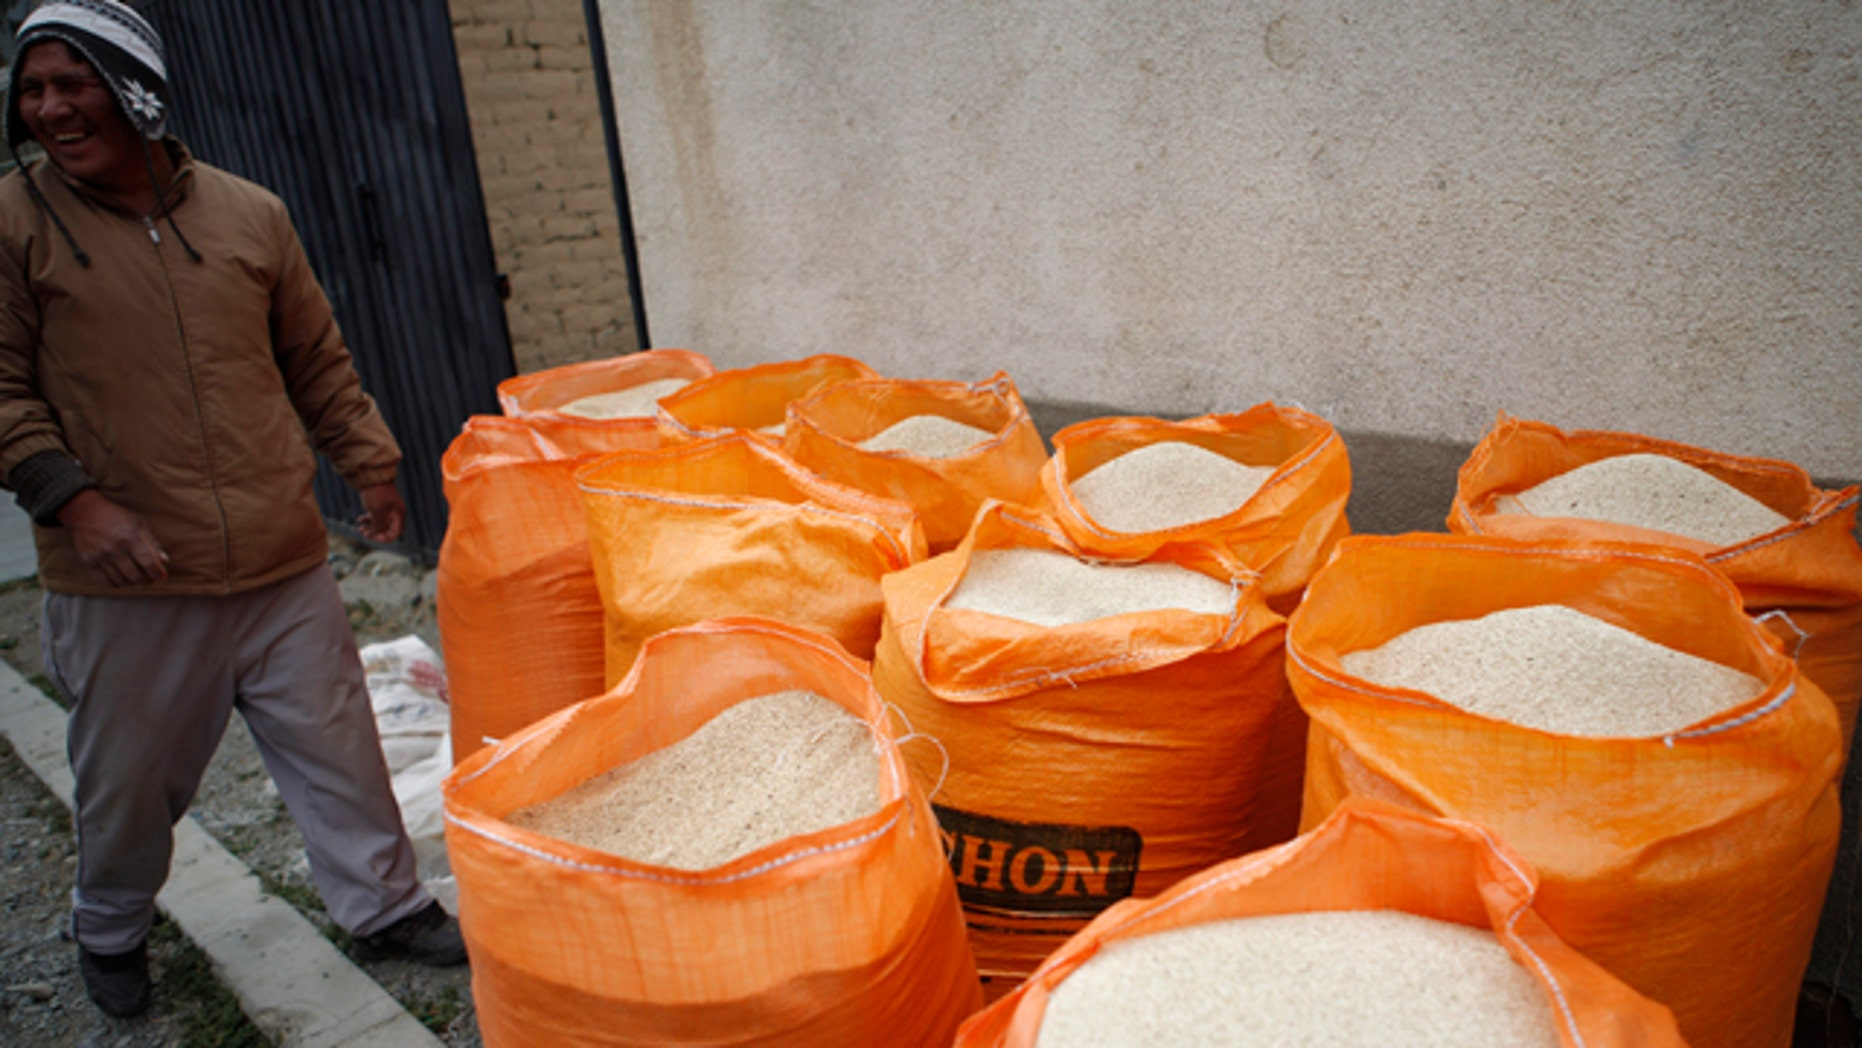 In this photo taken Oct. 2, 2010, a man stands next to bags filled with quinoa grain in La Paz, Bolivia. Quinoa's rising popularity among First World foodies has been a boon to some of the poor farmers in the semiarid highlands of Bolivia.   (AP Photo/Juan Karita)